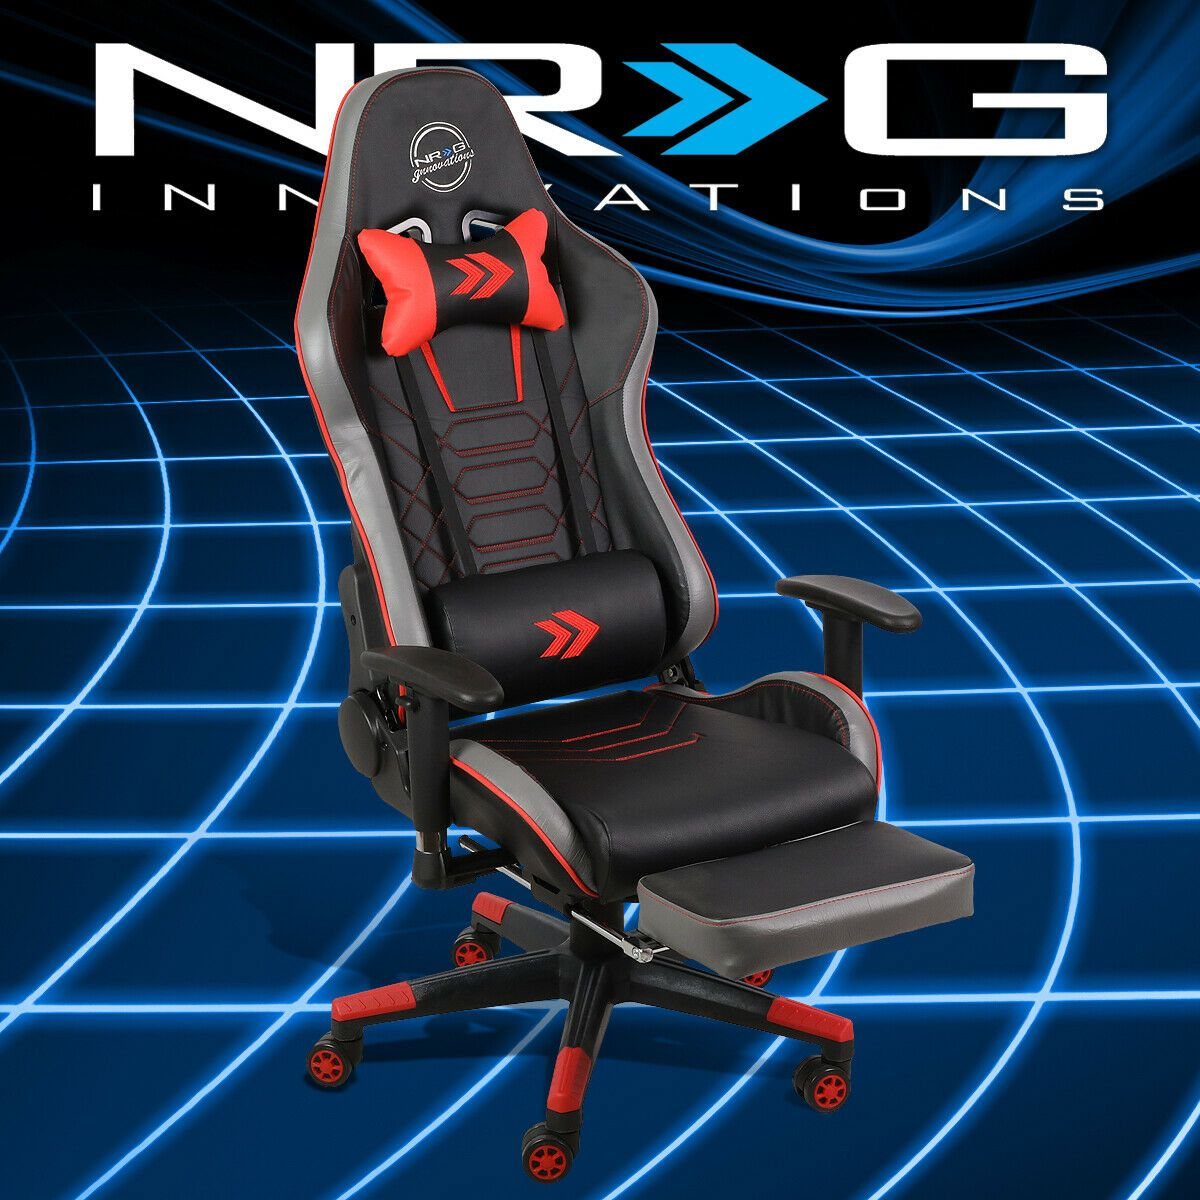 Nrg Performance Vinyl Height Adjustable Racing Office Seat Gaming Chair Red In 2020 Office Seating Gaming Chair Height Adjustable